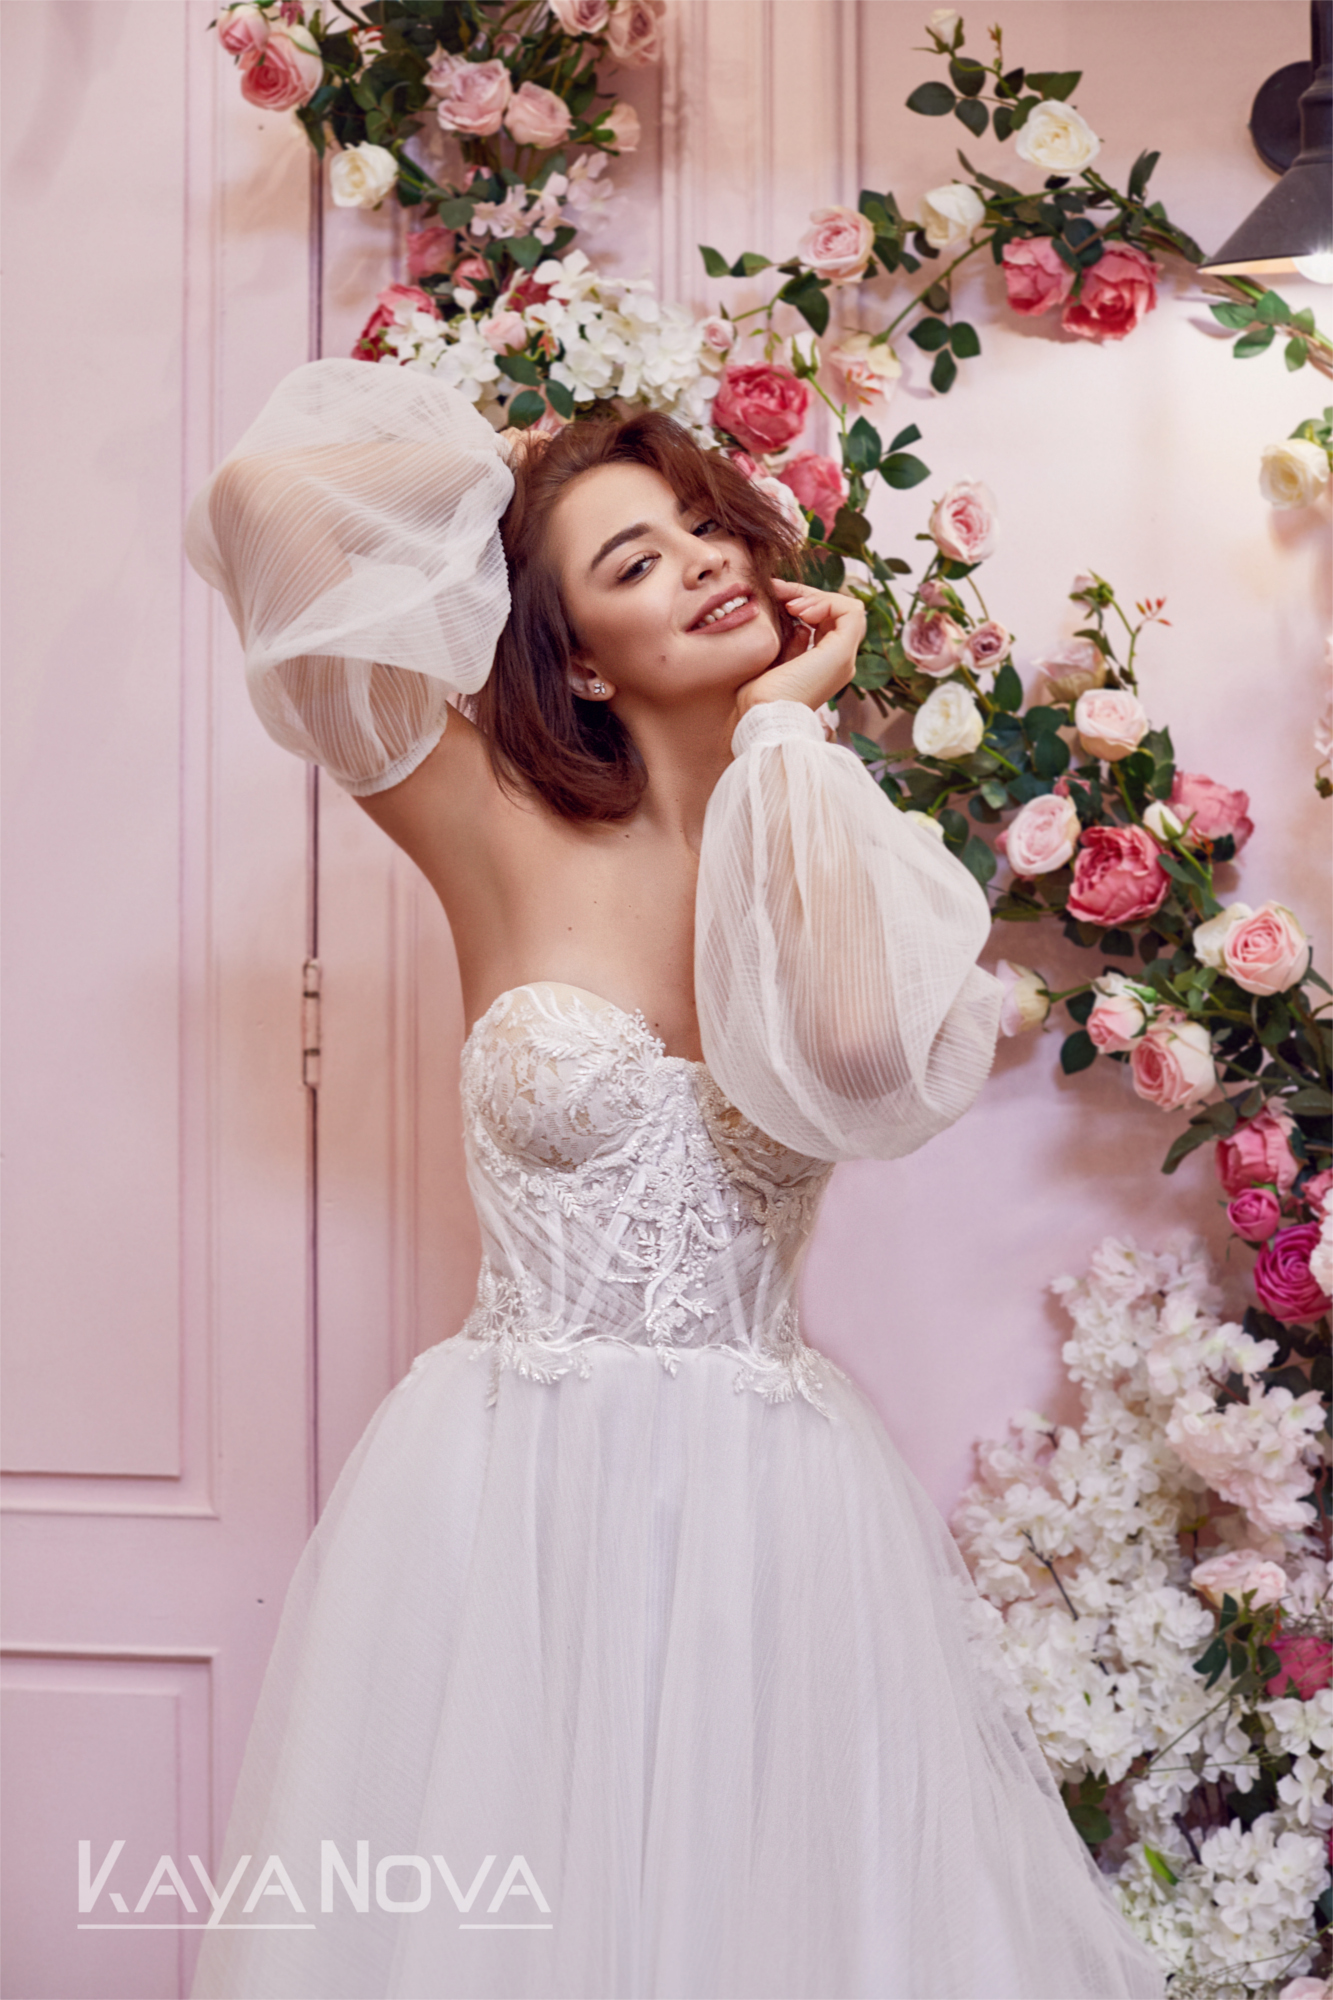 https://kayawedding.com/images/stories/virtuemart/product/Zafiro5.jpg